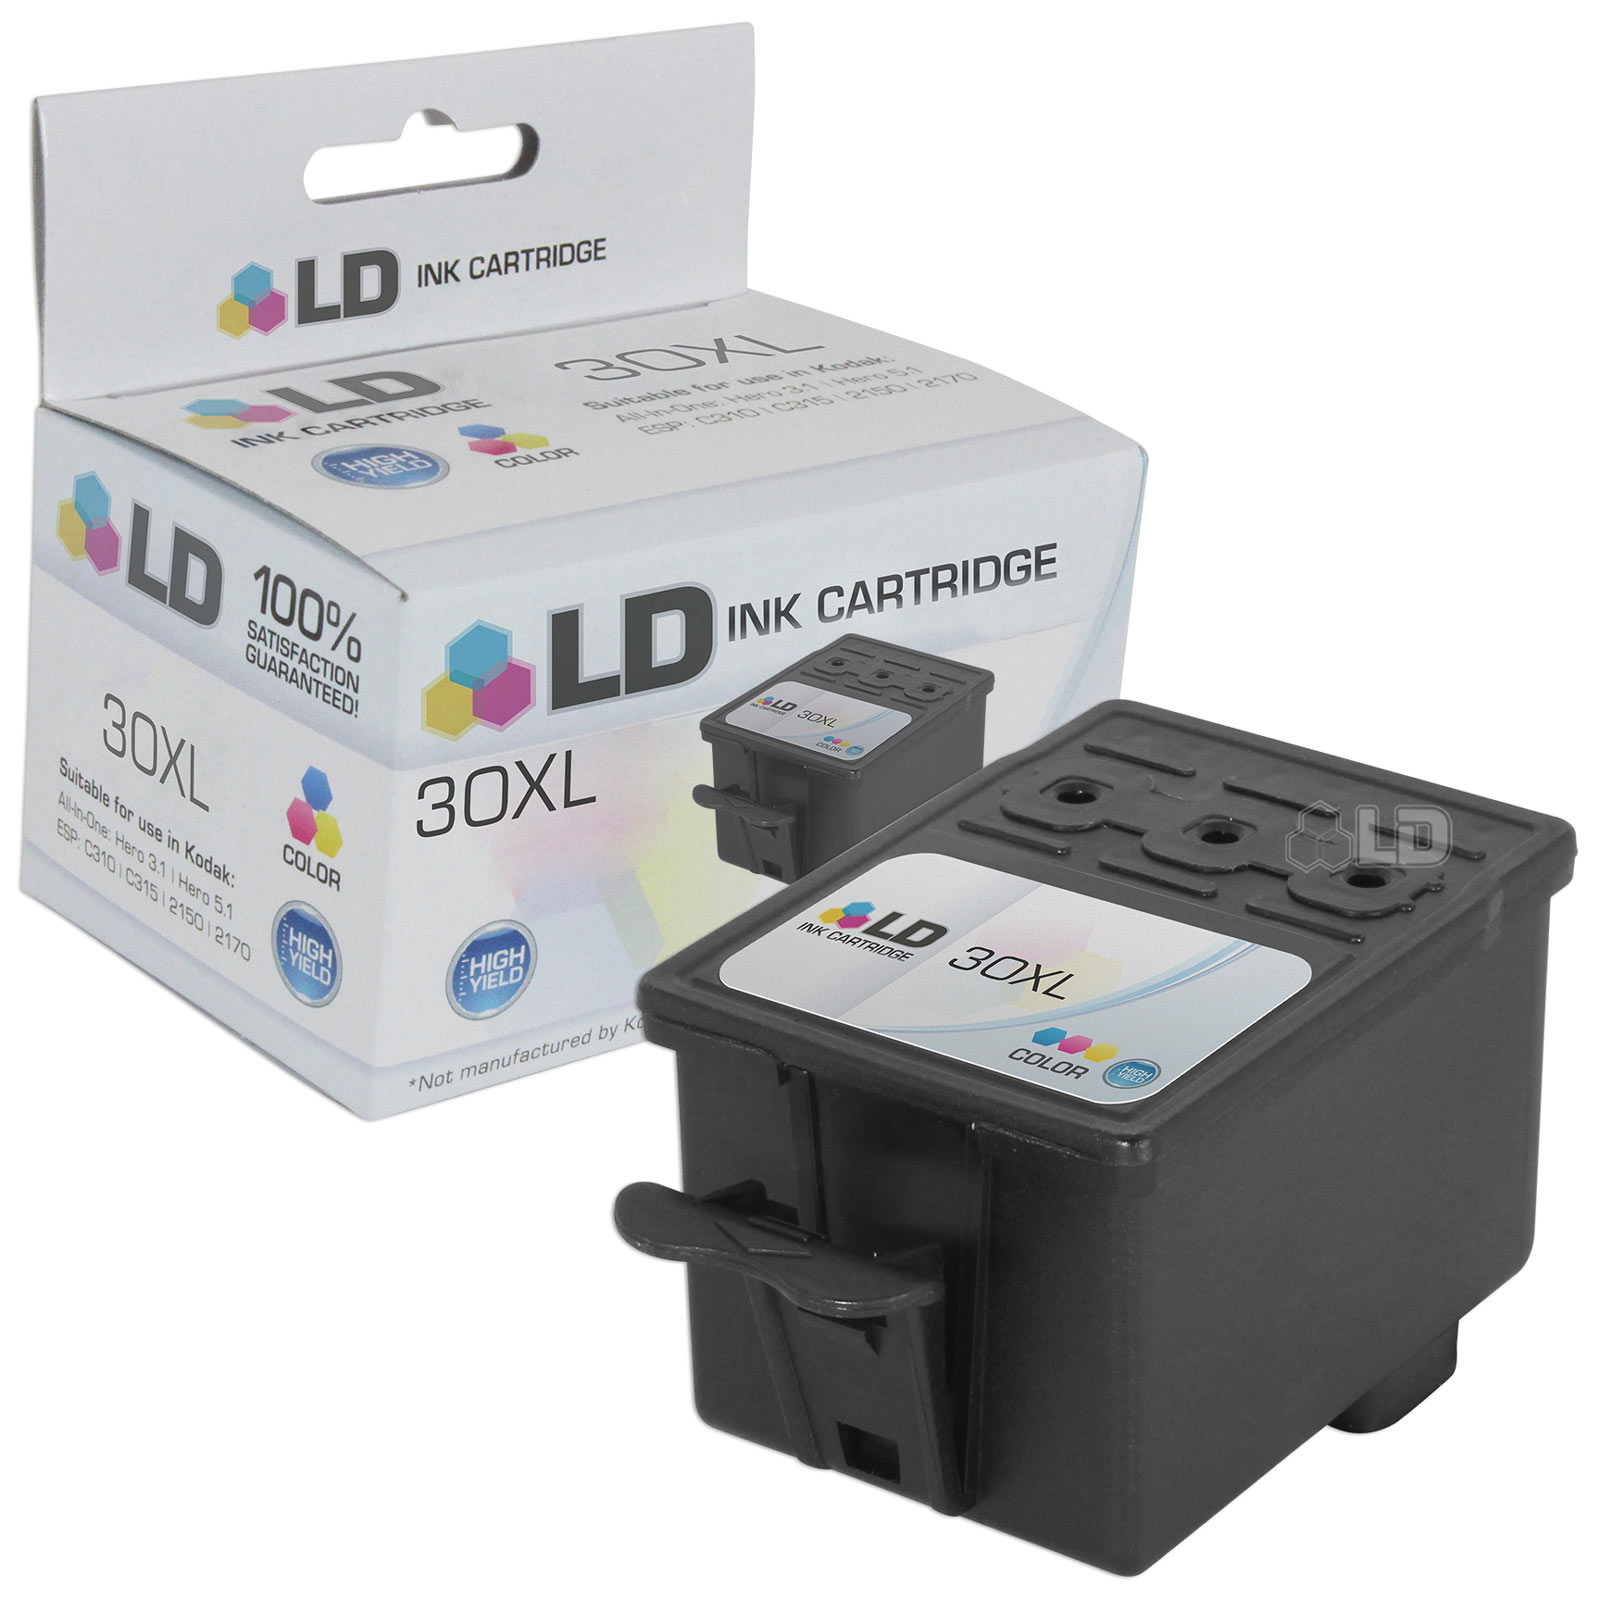 LD Compatible Replacement for Kodak 30XL / 30 (1341080) High Yield Color Ink Cartridge for use in Kodak Hero 3.1, 5.1, ESP C310, C315, & Office 2150, 2170 Printers